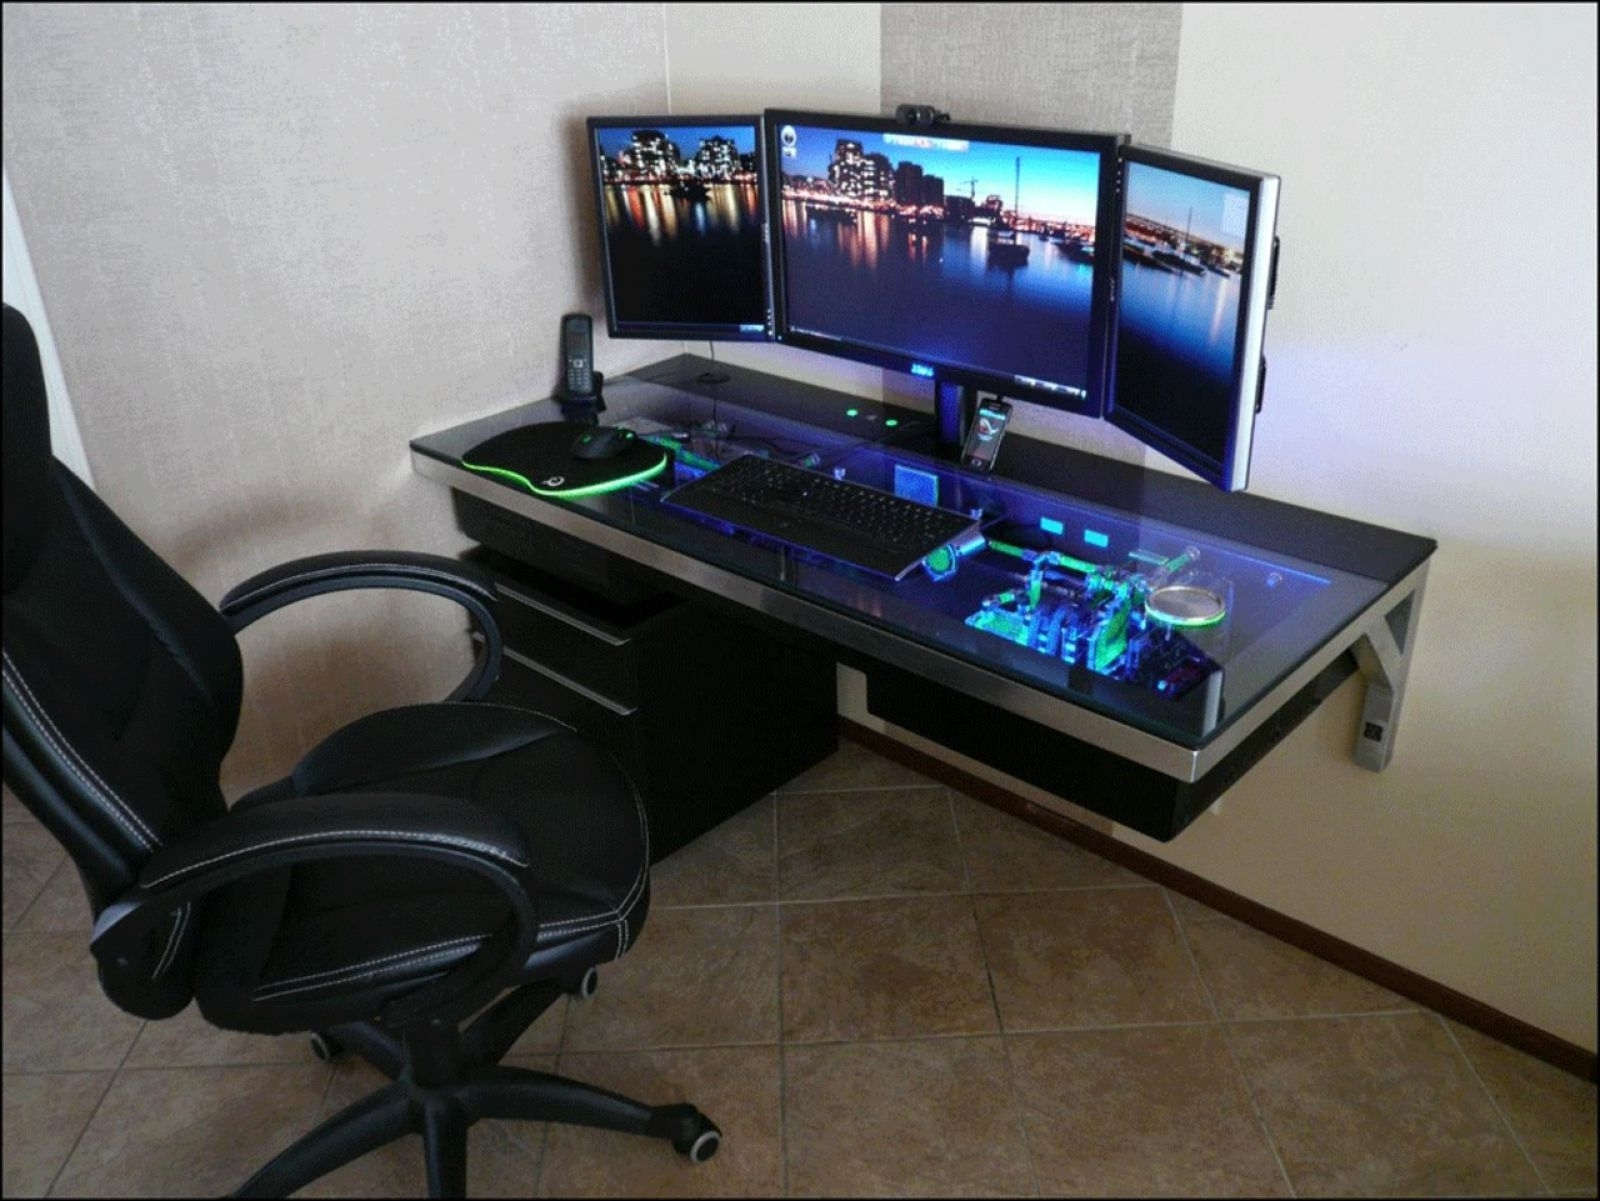 2018 Unique Computer Desks Intended For Best Corner Computer Desk Ideas For Your Home (View 2 of 20)